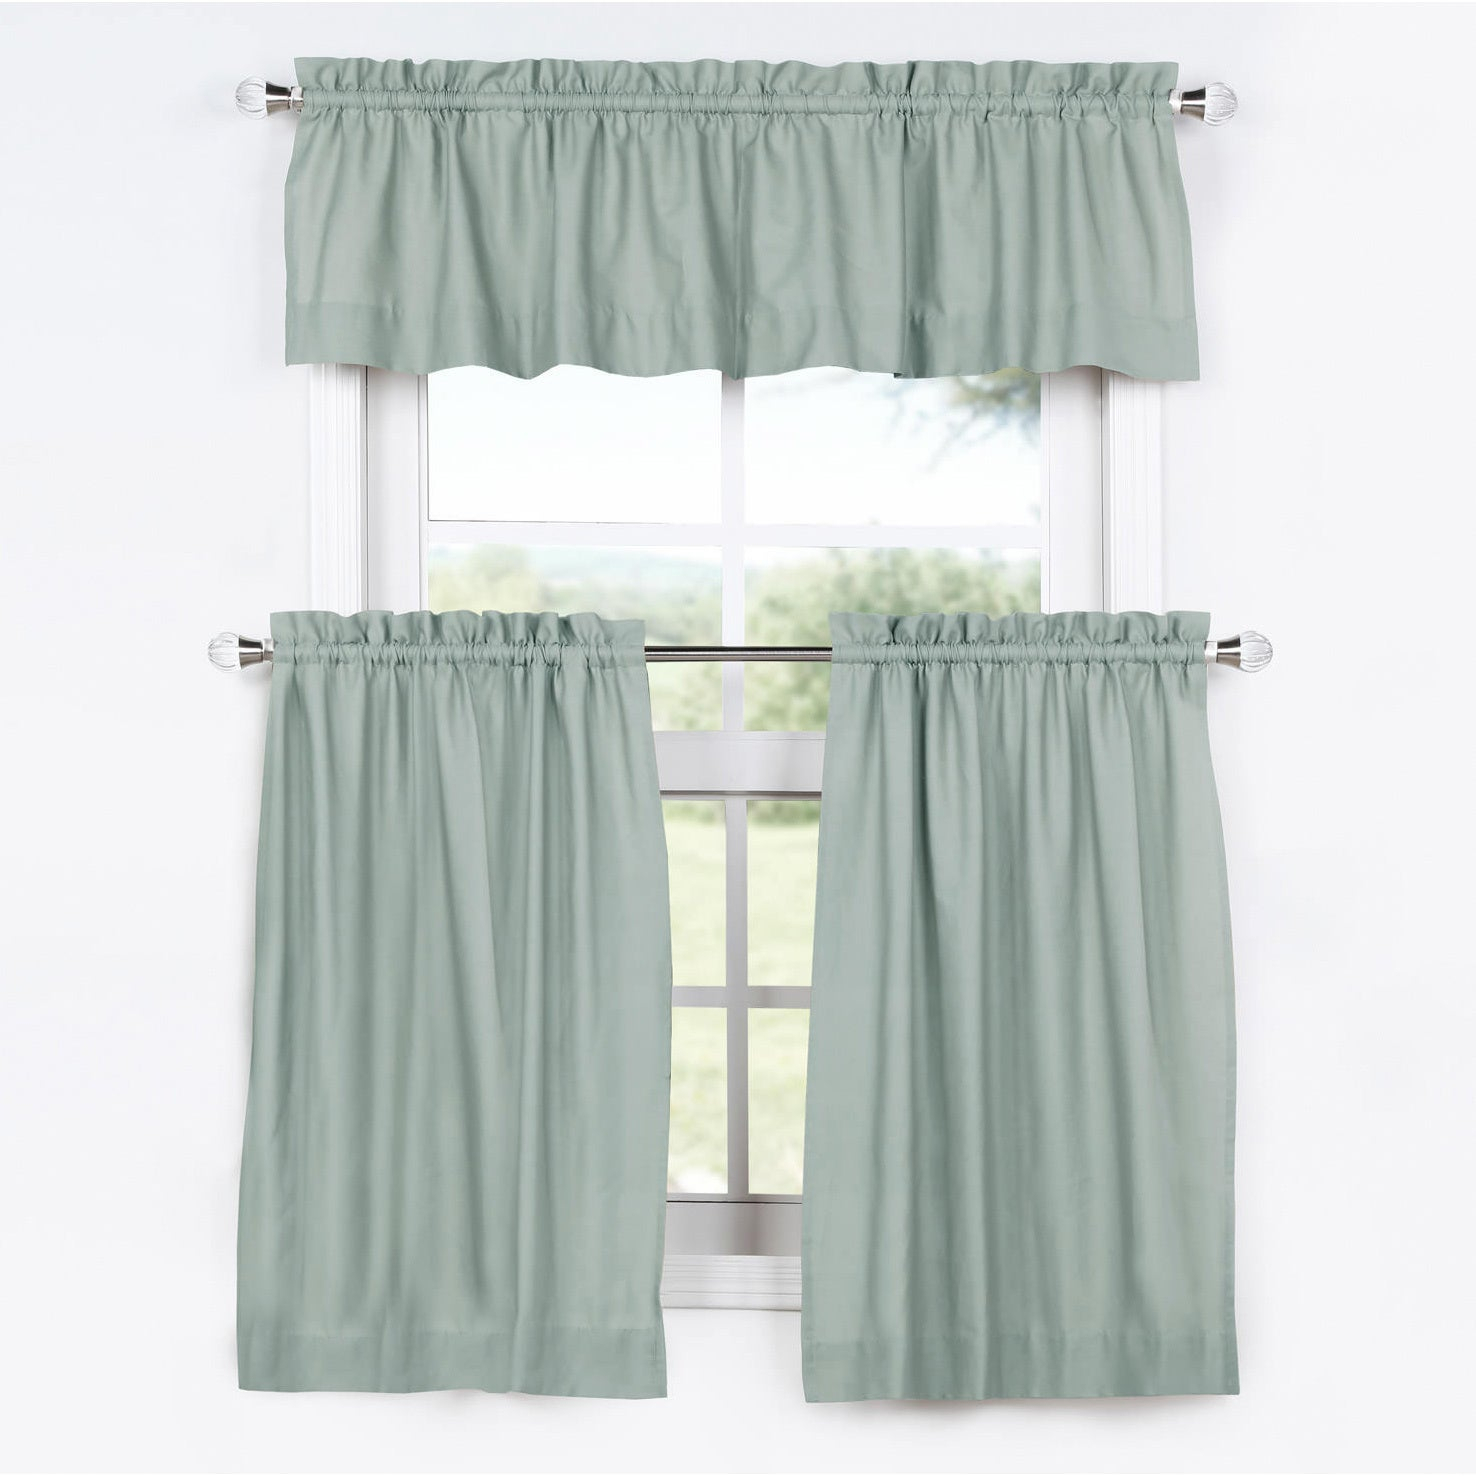 Exclusive Fabrics Solid Cotton Kitchen Tier Curtain & Valance Set (3pc) With Regard To Bermuda Ruffle Kitchen Curtain Tier Sets (View 6 of 20)